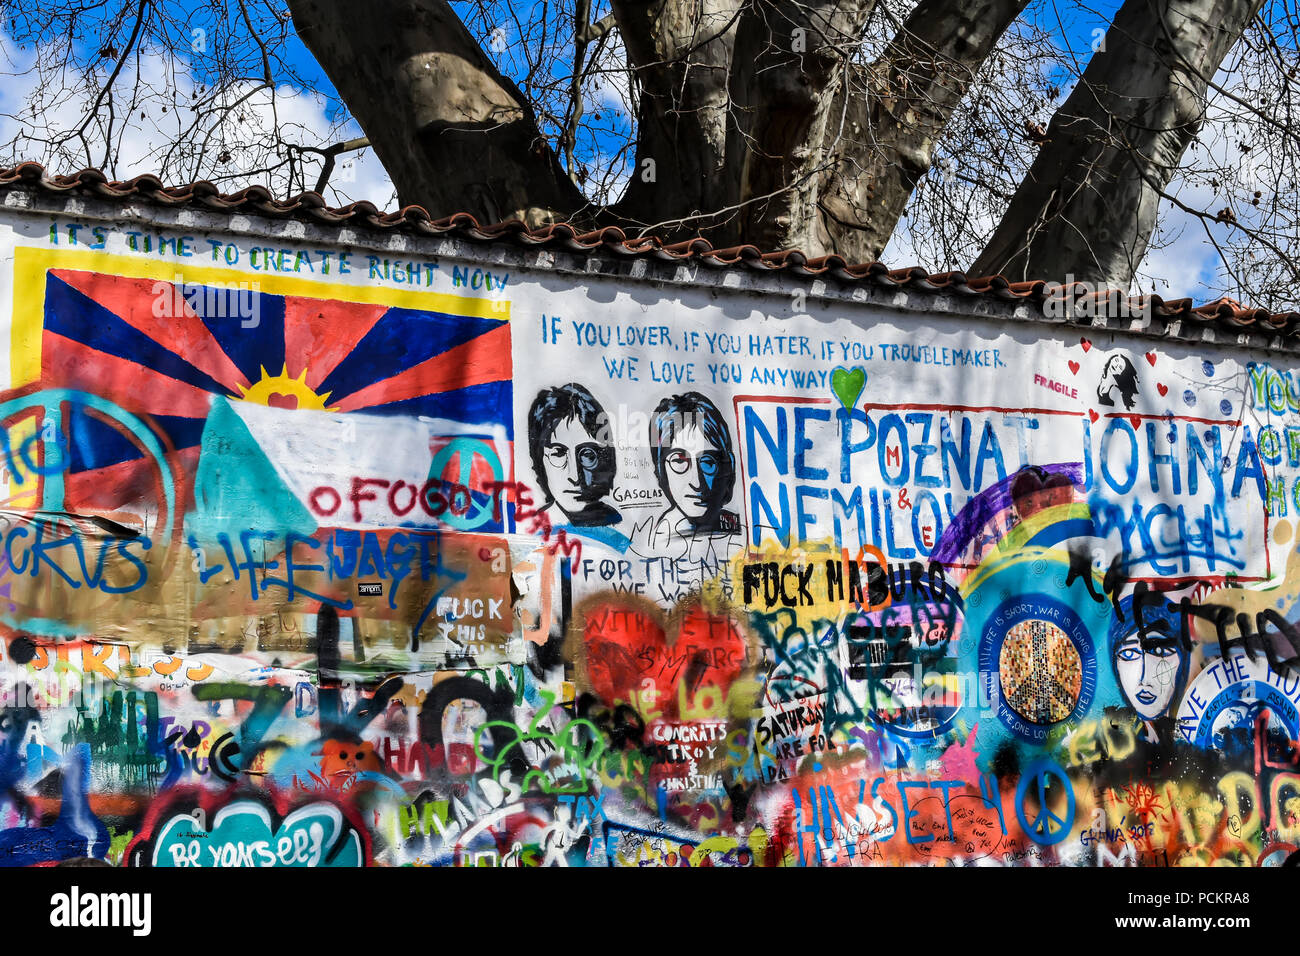 The Lennon Wall is a wall in Prague. Once a normal wall, since the 1980s it has been filled with John Lennon-inspired graffiti and pieces of lyrics. - Stock Image